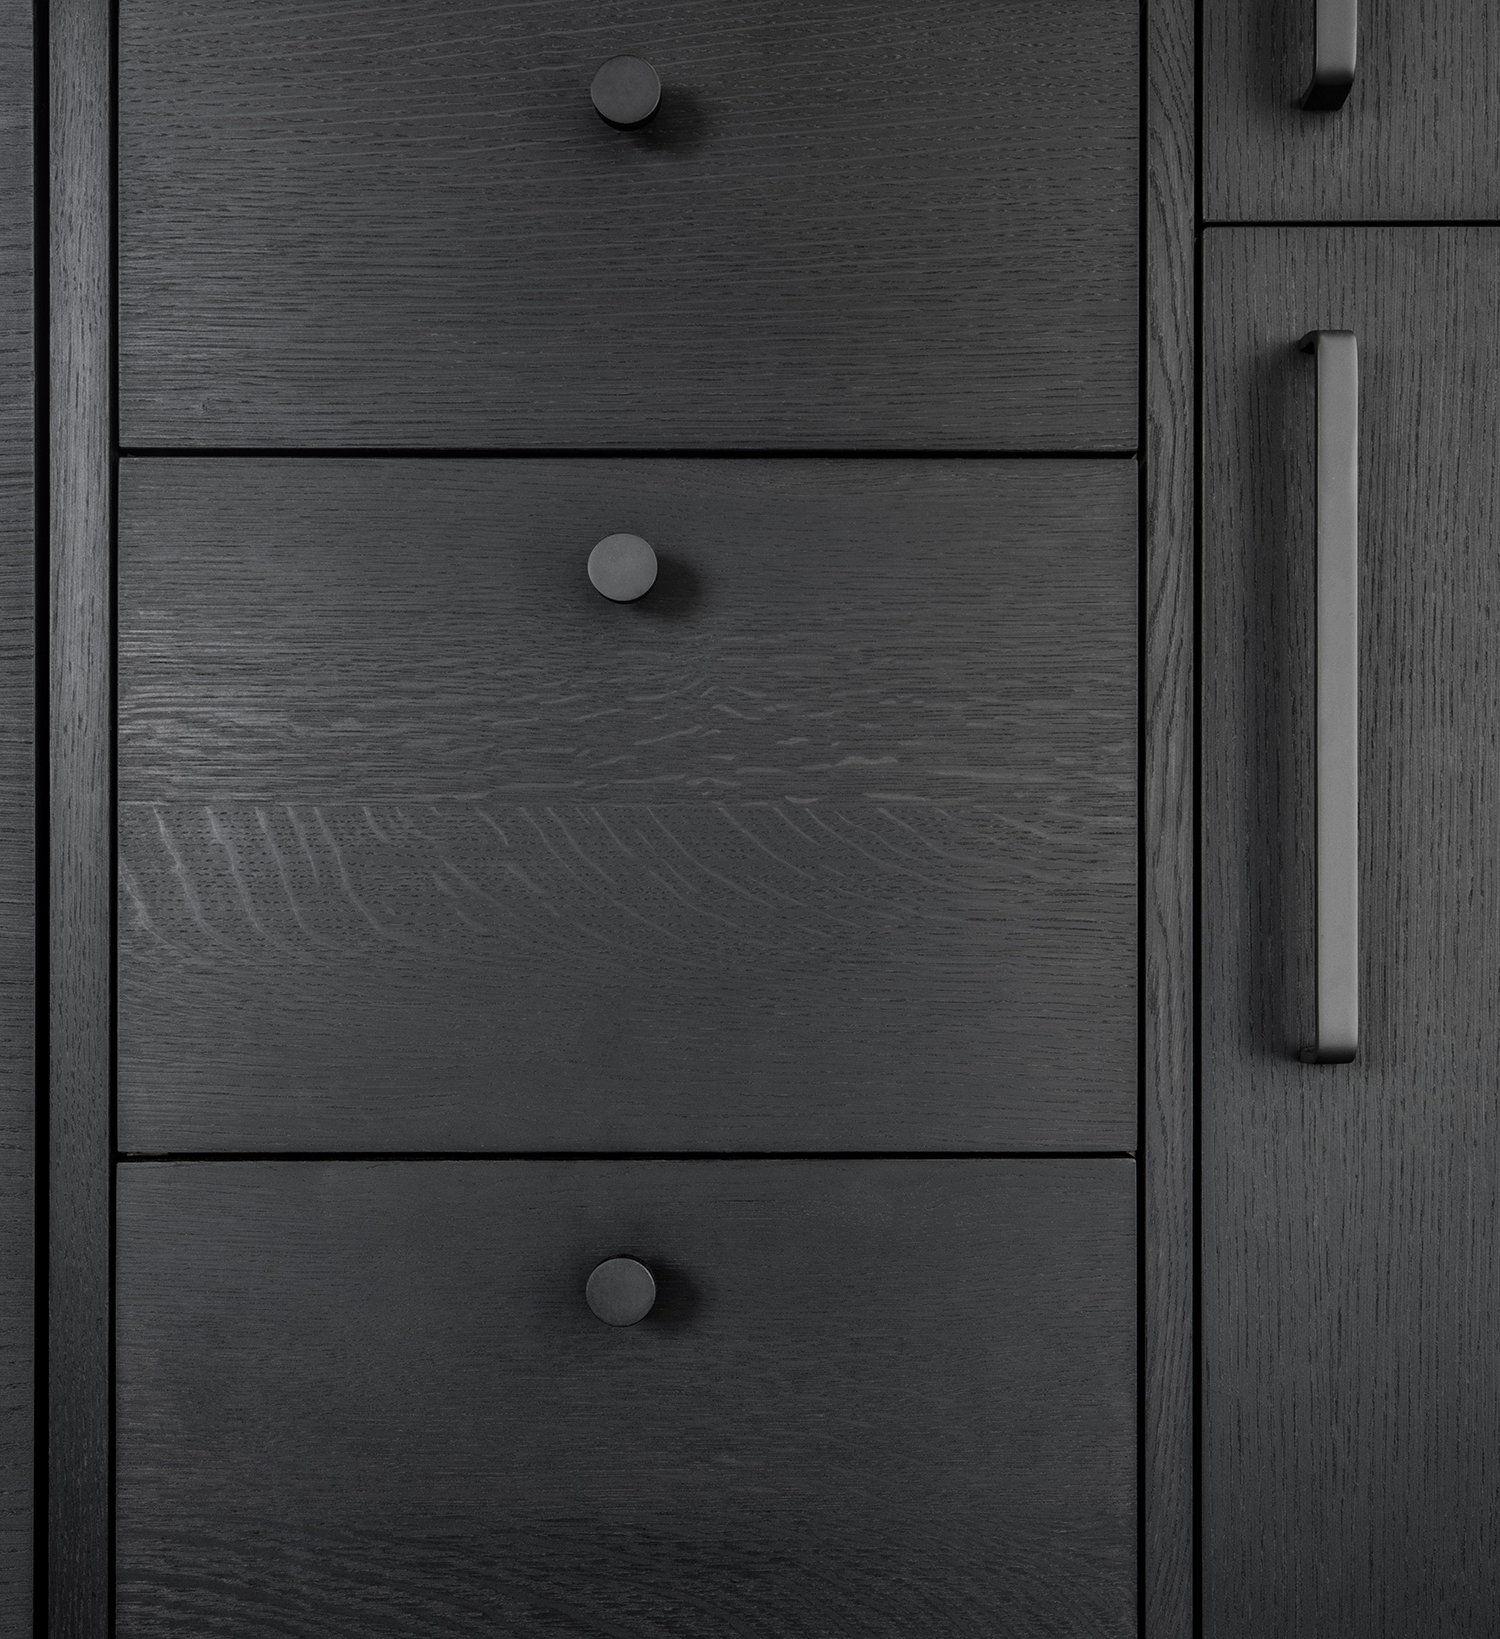 detail of custom kitchen cabinetry in ebonized oak